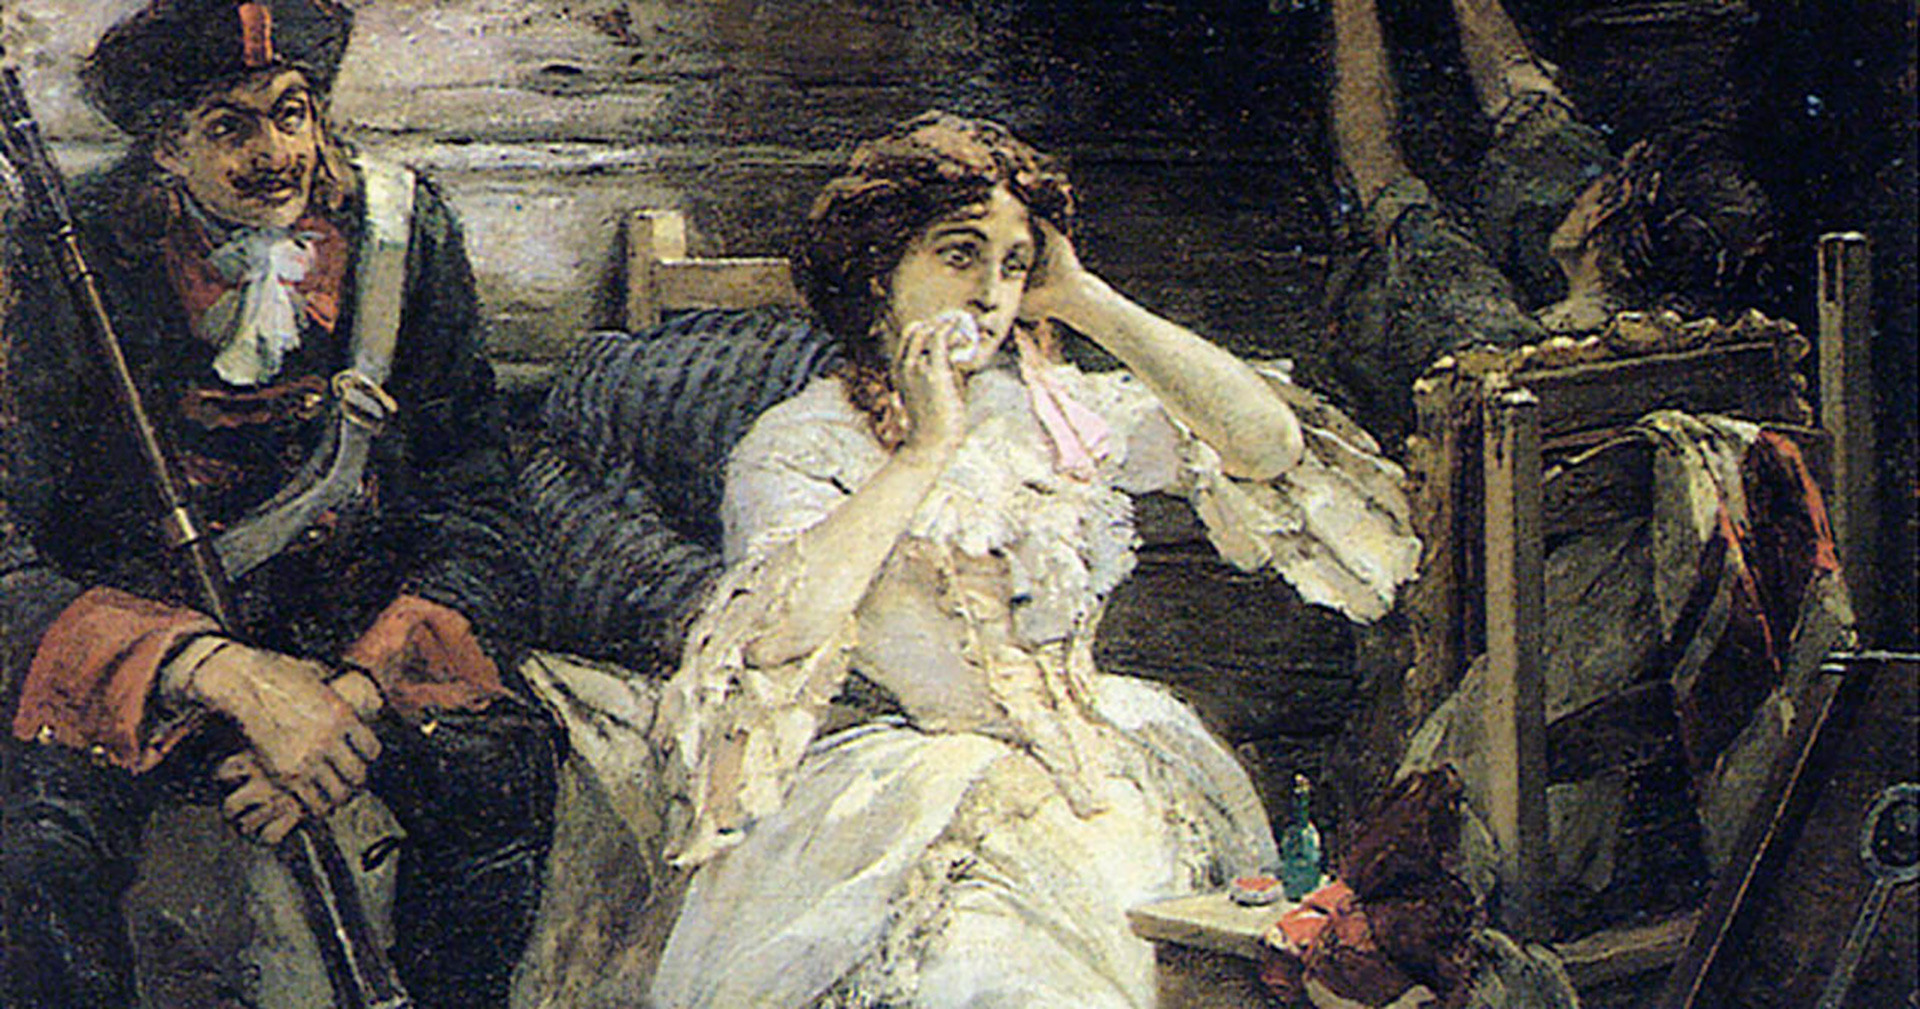 Mary Hamilton before her execution. Painting by Pavel Svedomskiy.